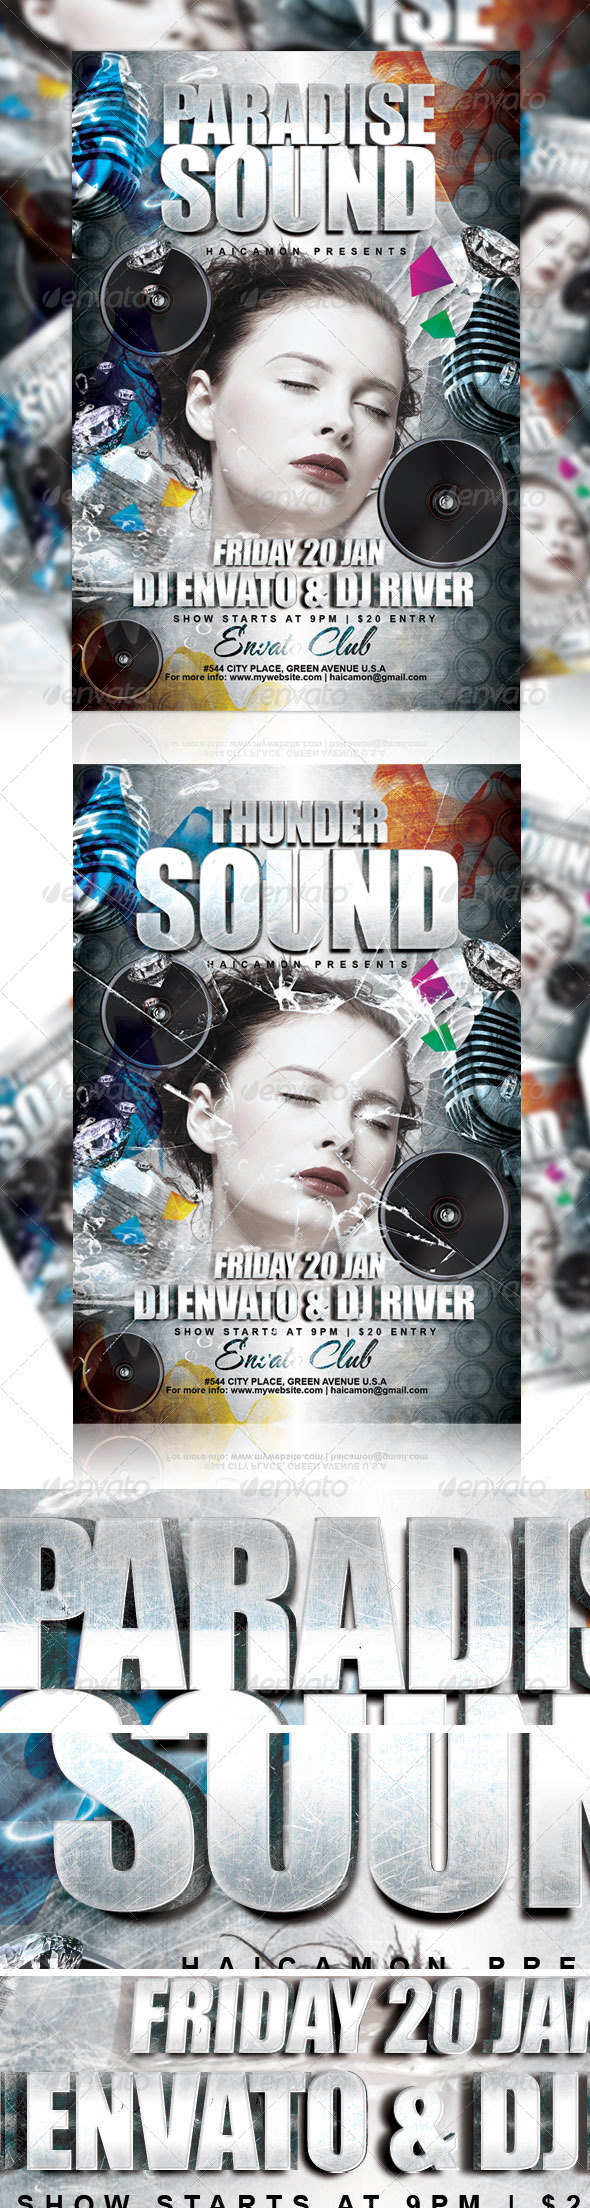 Thunder Sound Party Flyer - Clubs & Parties Events